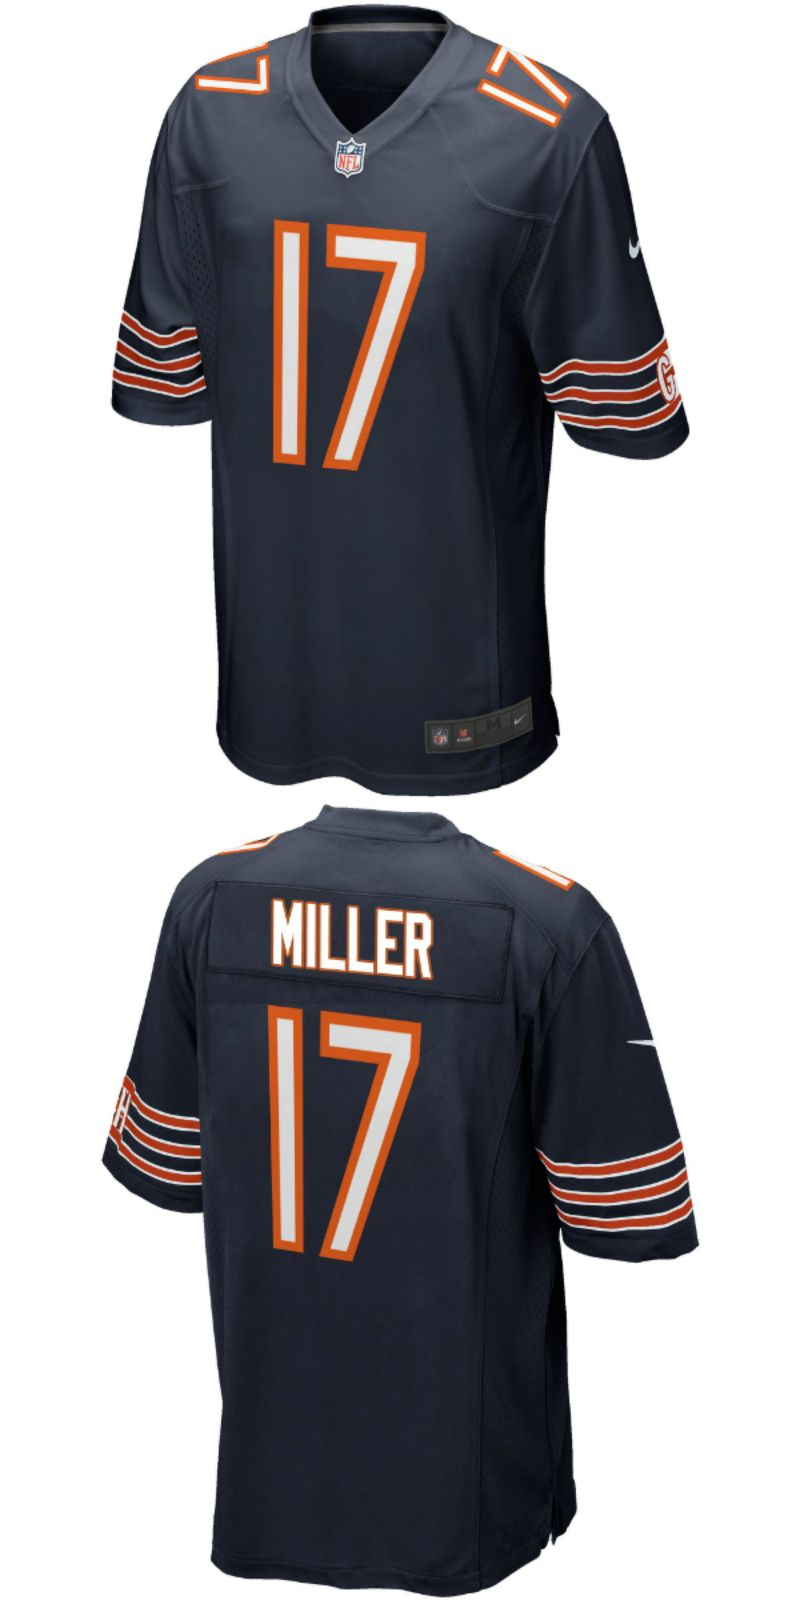 new products 168c6 38921 UP TO 70% OFF. Anthony Miller Chicago Bears Nike 2018 NFL ...